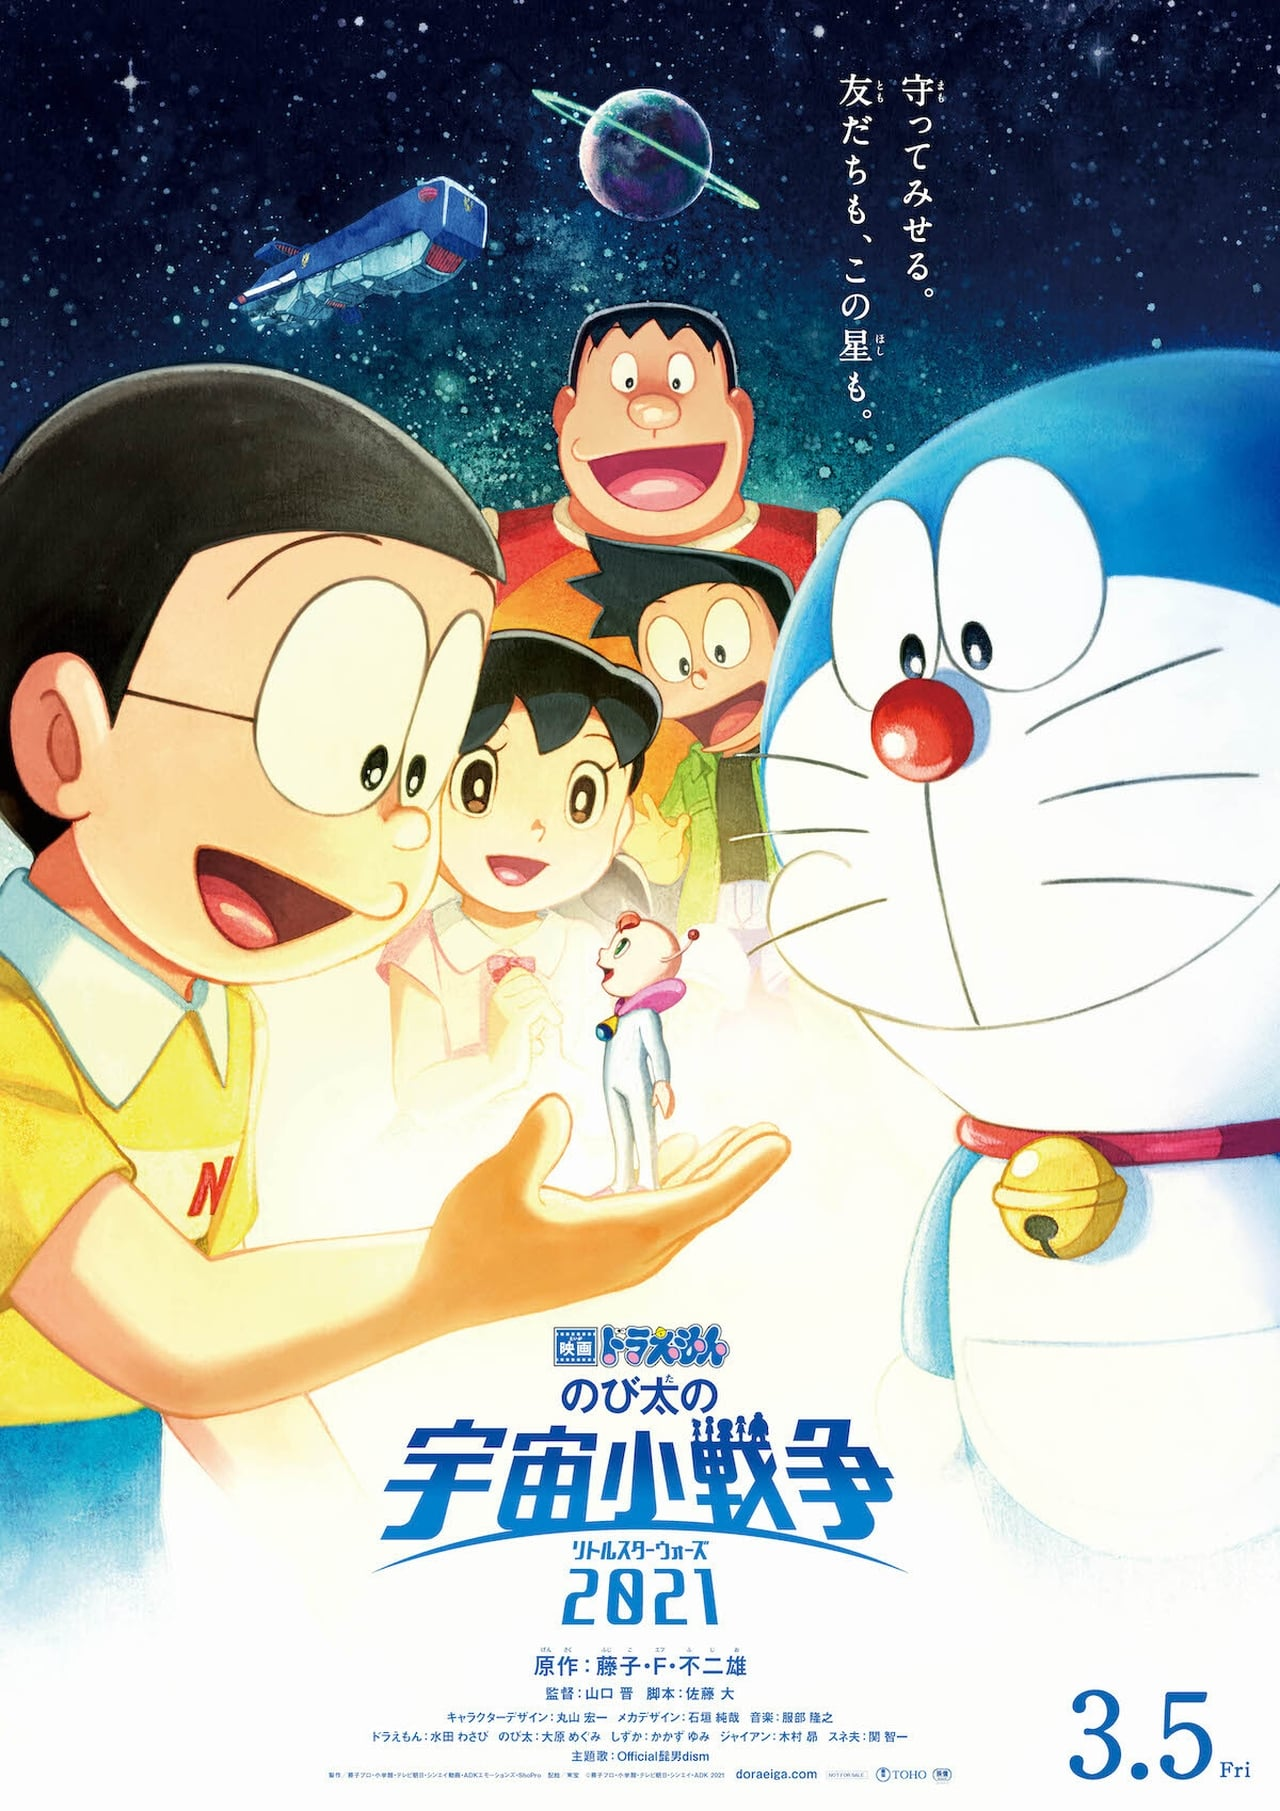 Doraemon the Movie 2021: Nobita's Space War (Little Star Wars)